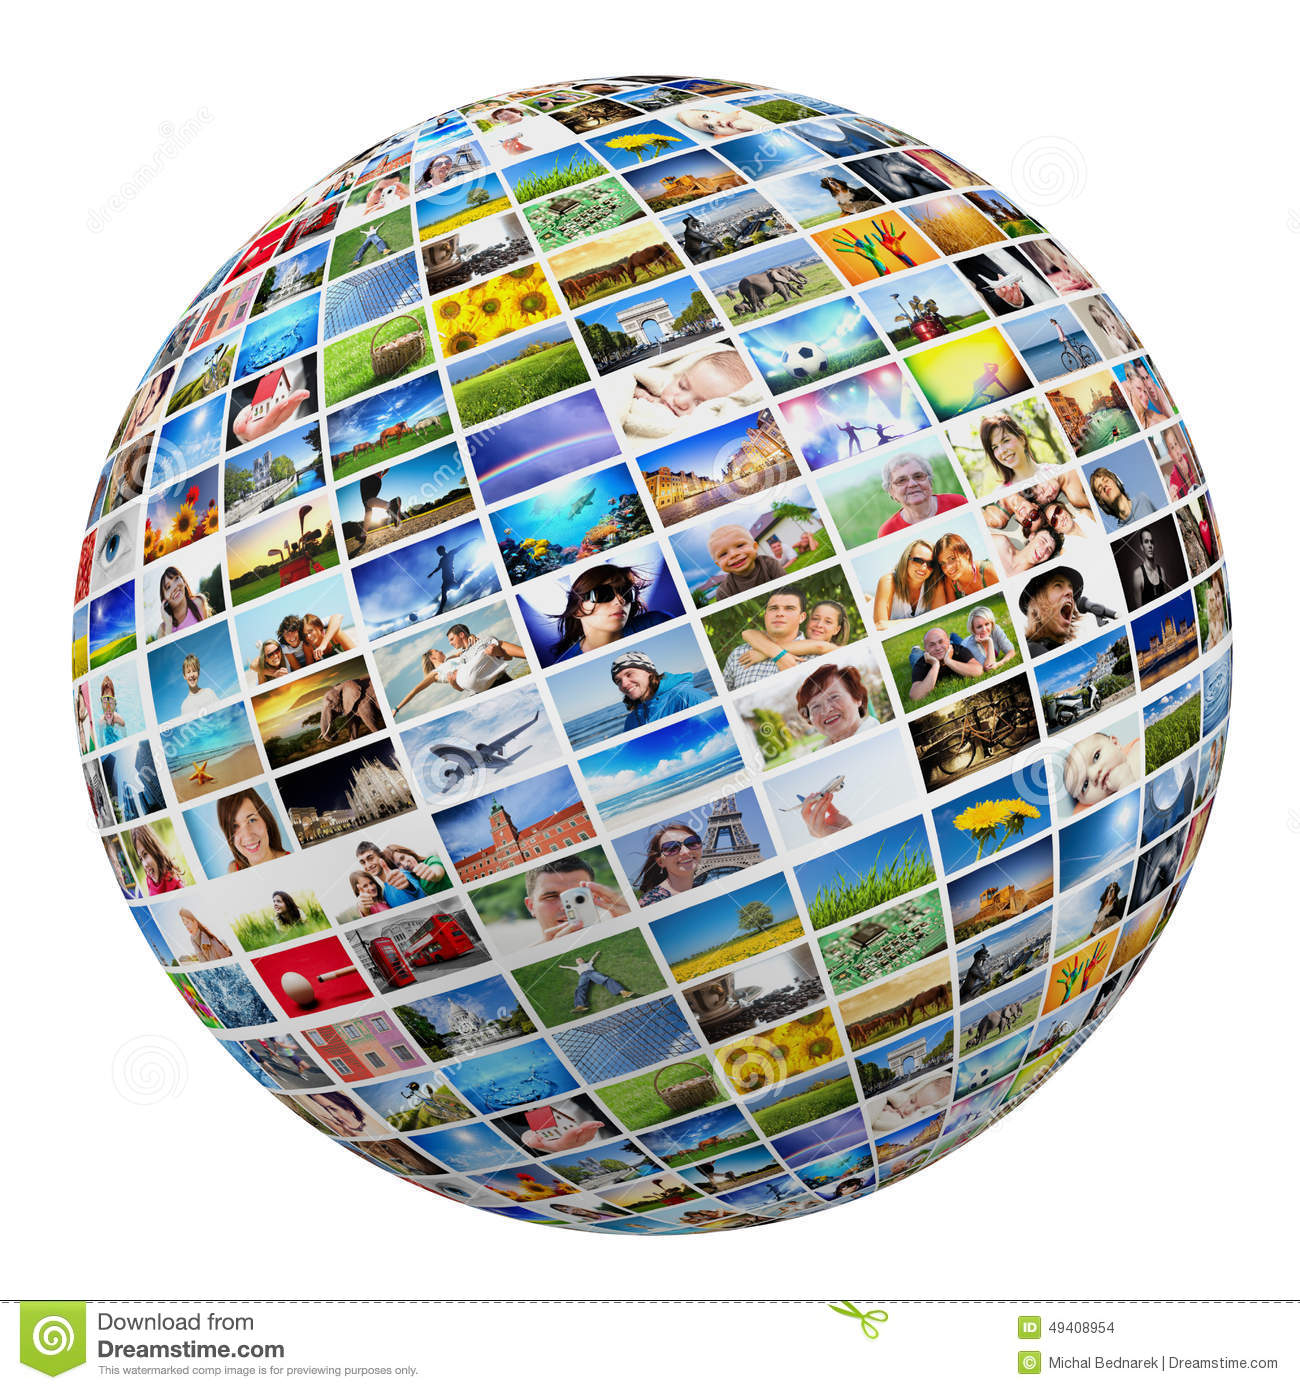 DIGITAL media and marketing business for sale